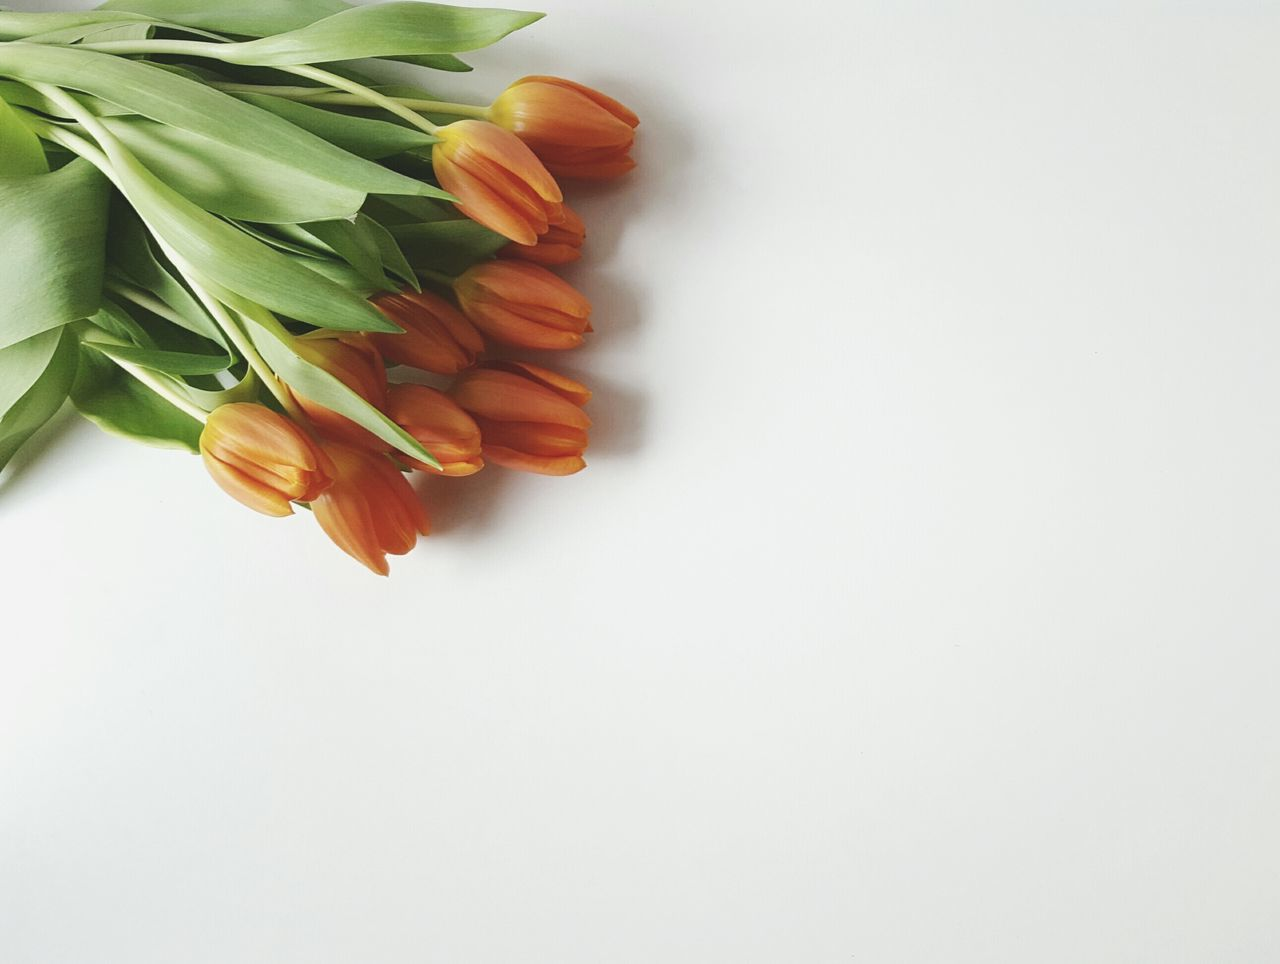 Tulips Showcase: February Flowers Tulips Orange Bouquet Leafes Loose Green Minimalism Framing Nature White Album Present Gift Lying On The Floor Delicious Smell Scent Spring Fragrance Blossoms  Flower Petals Decorating Interior Design Botany